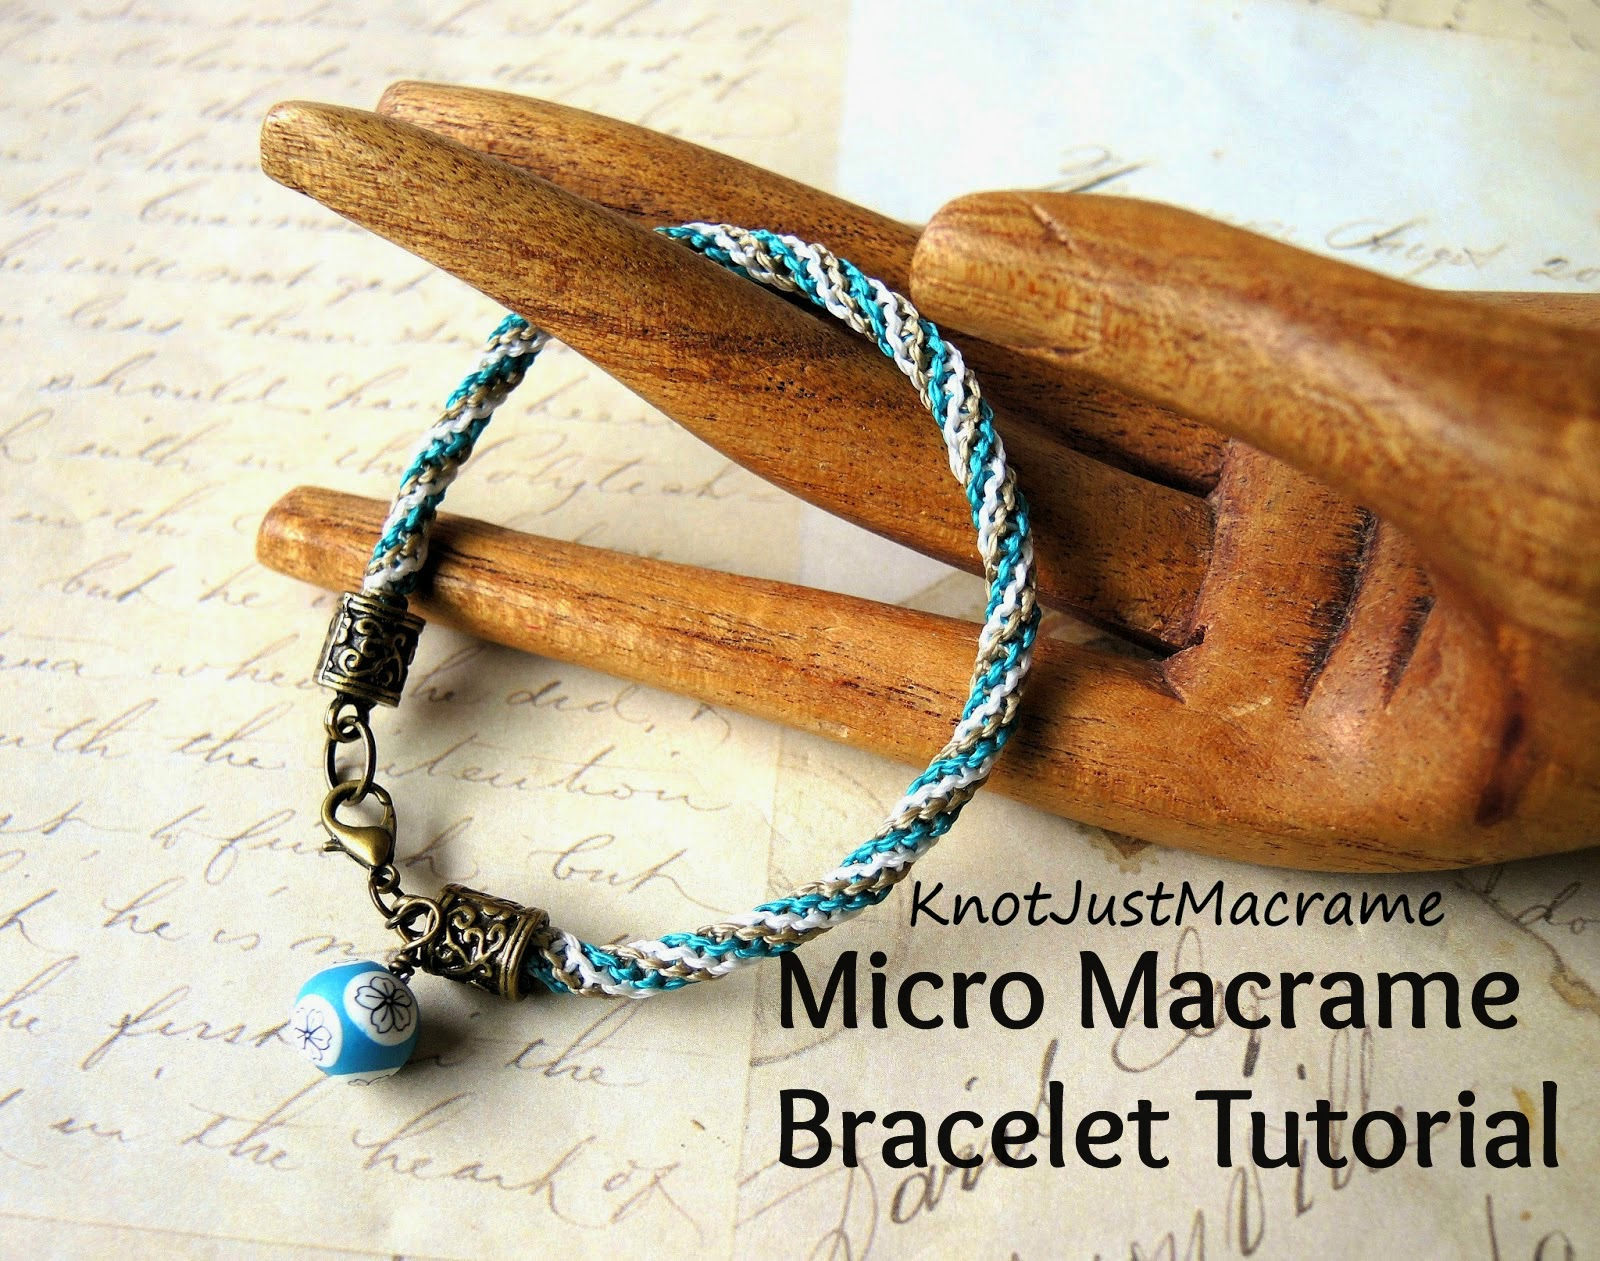 Micro macrame bracelet DIY tutorial from Sherri Stokey of Knot Just Macrame.